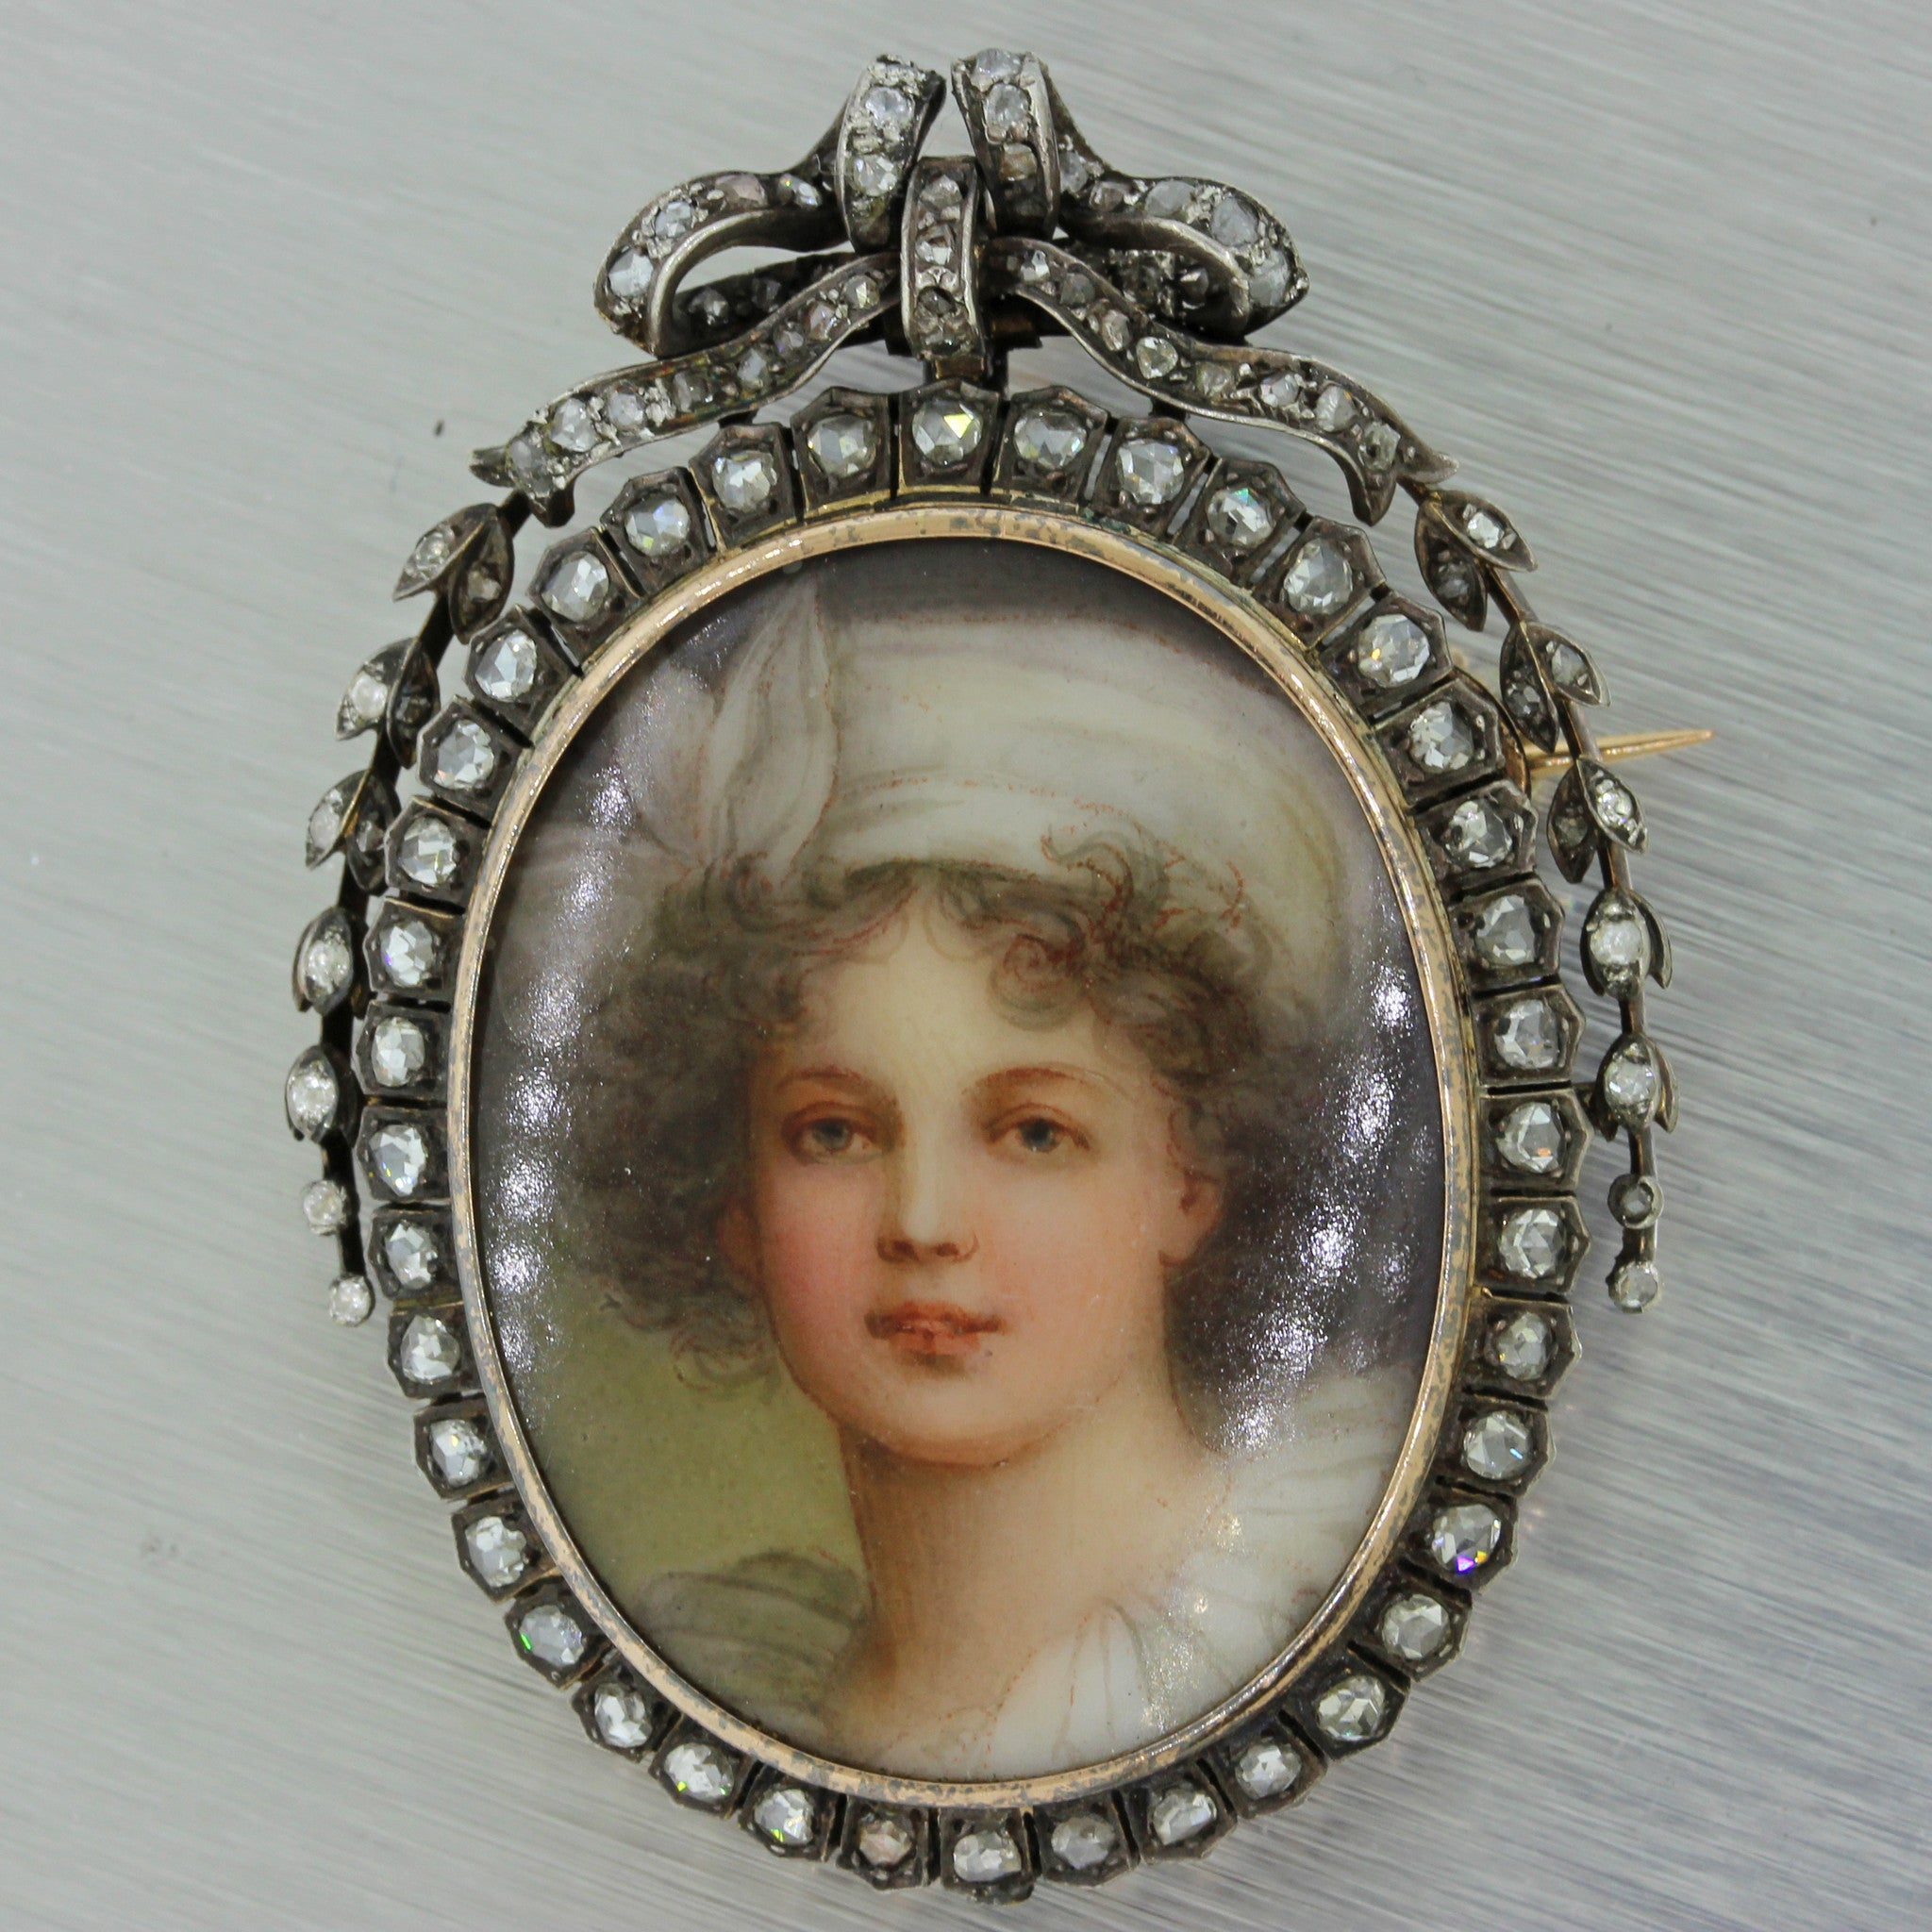 1850s Antique Victorian 18k Gold Diamond Elisabeth Louise Vigee Le Brun Brooch